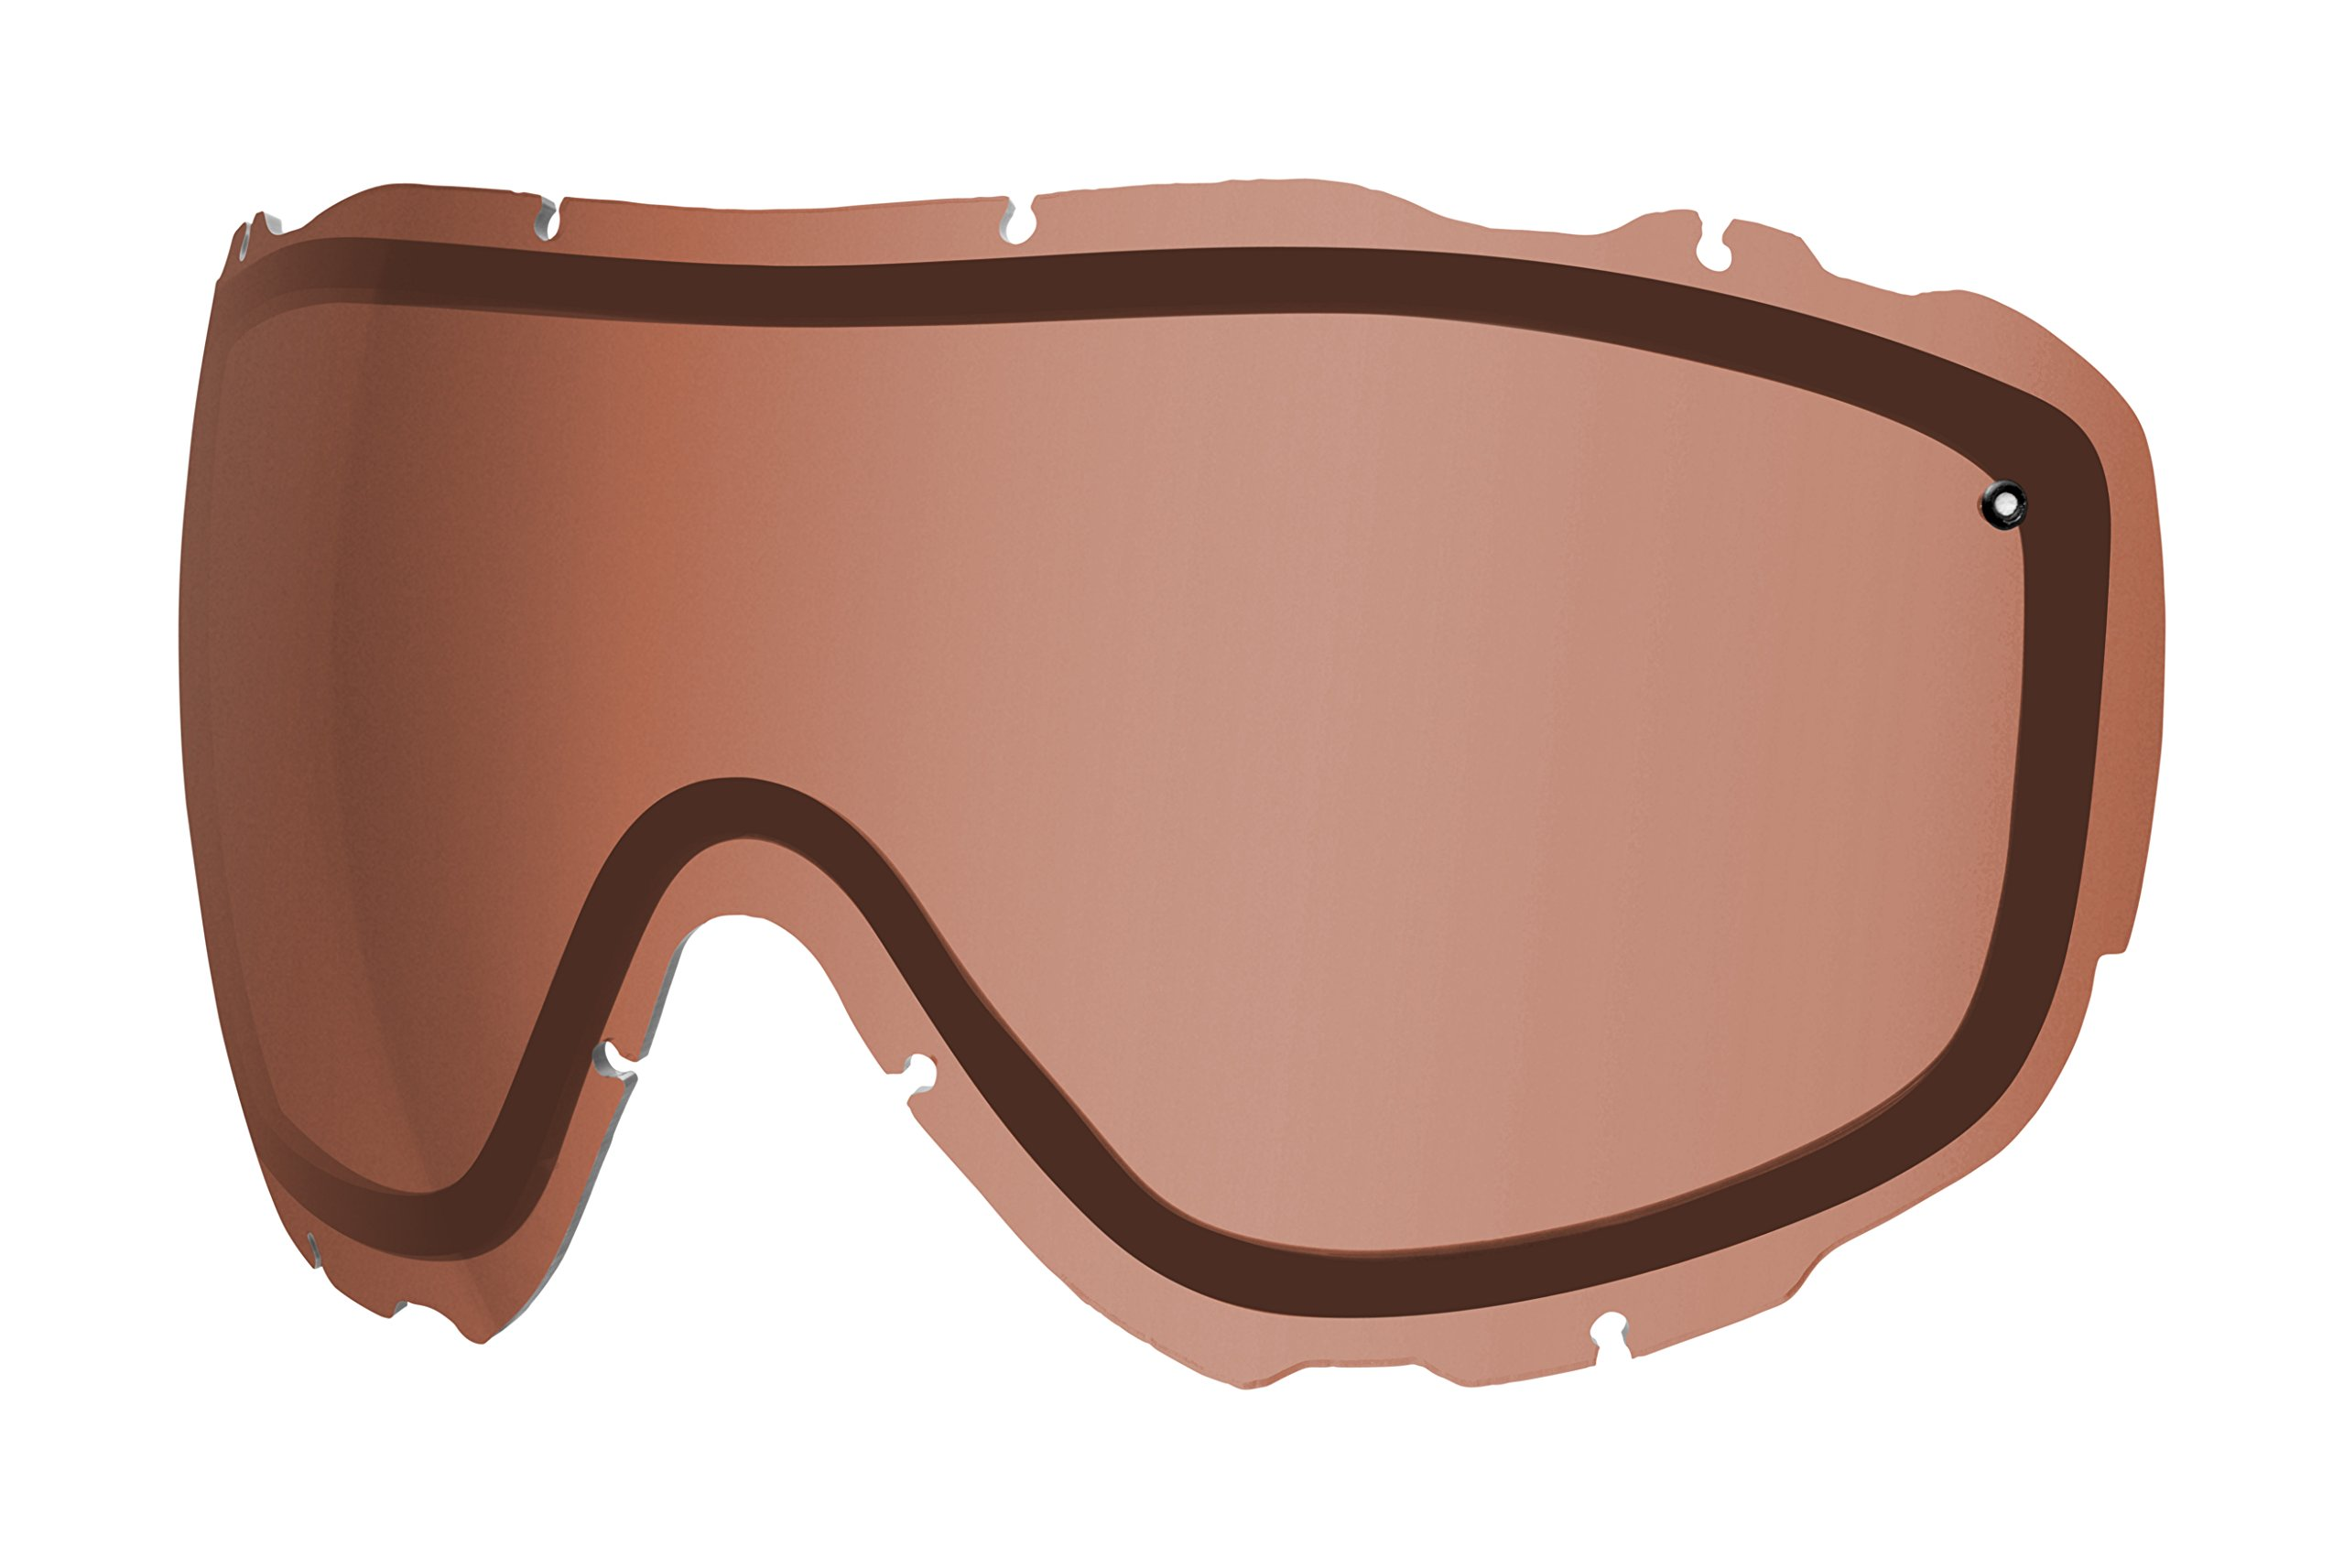 Smith PROPHECY TURBO Replacement Lens (POLARIZED ROSE COPPER) by Smith